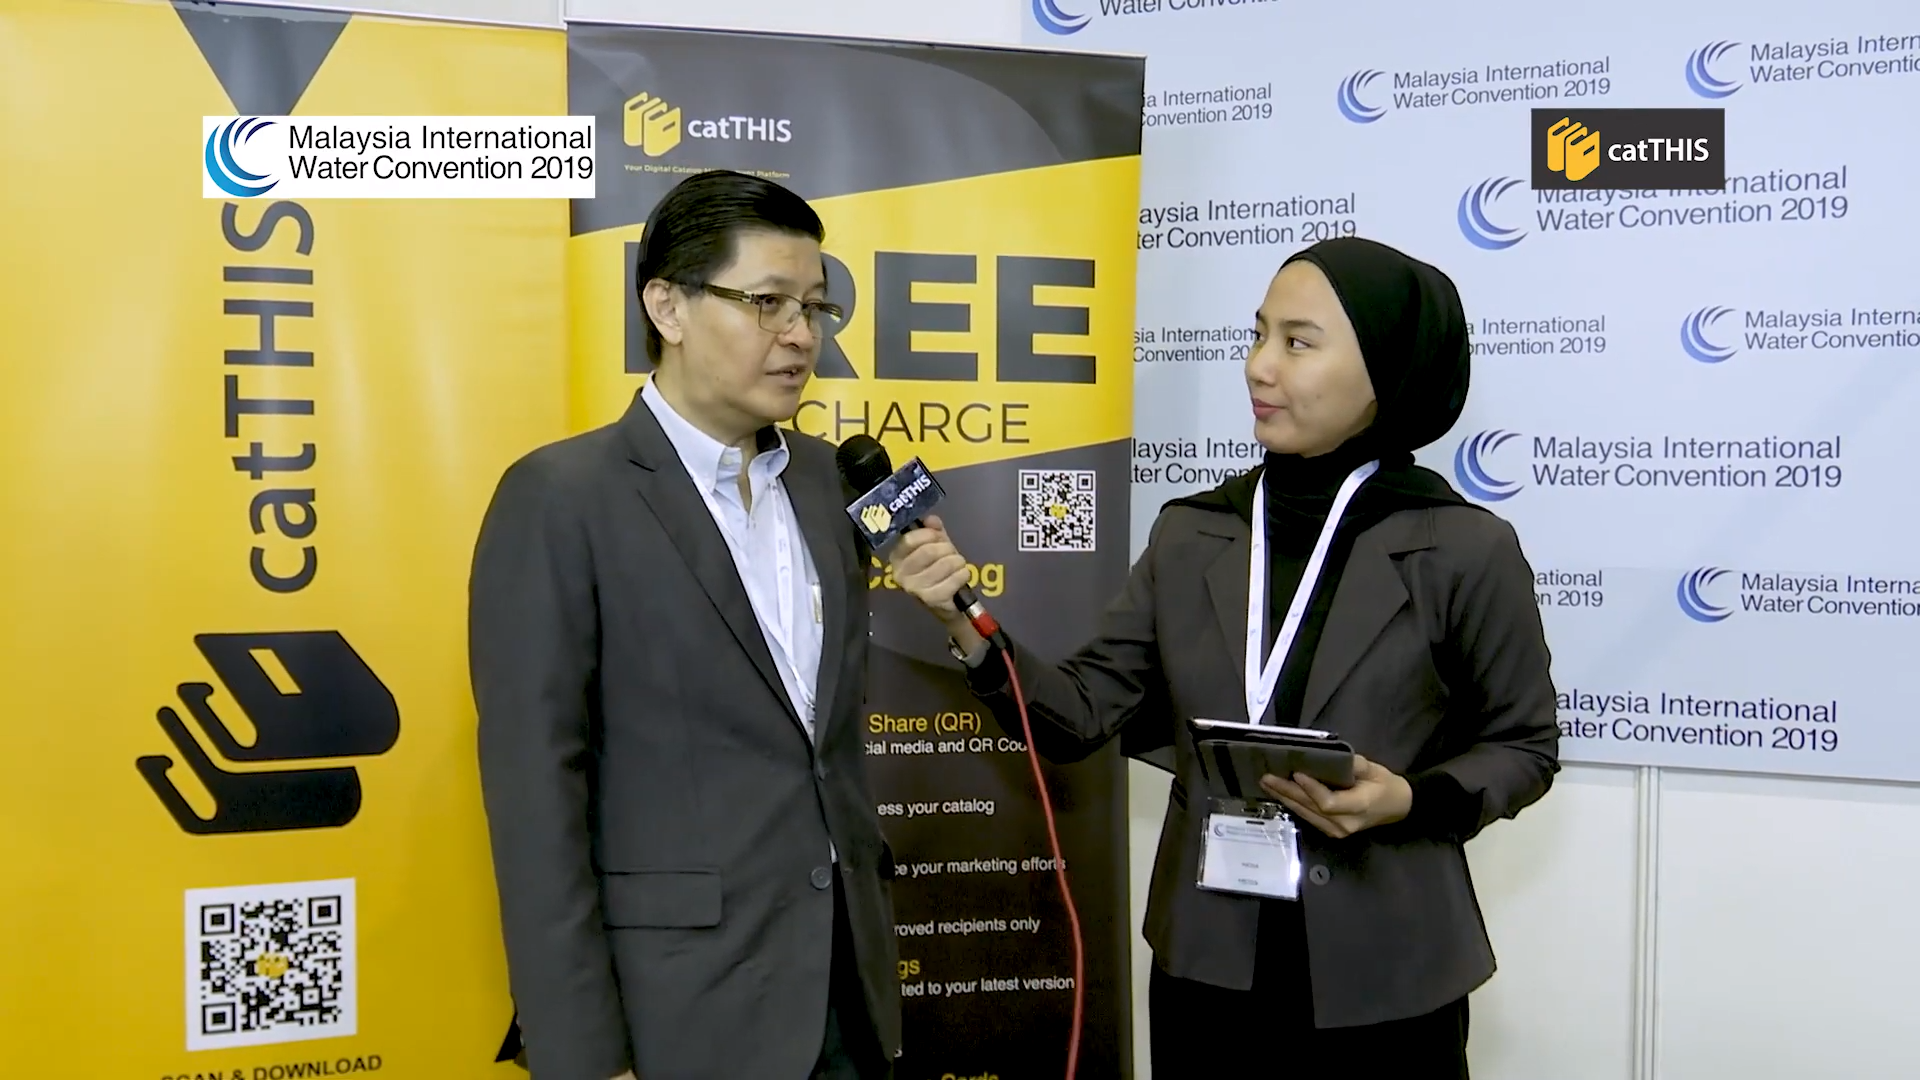 Interview of Mr Chai CTI Resources by catTHIS @ MIWC 2019